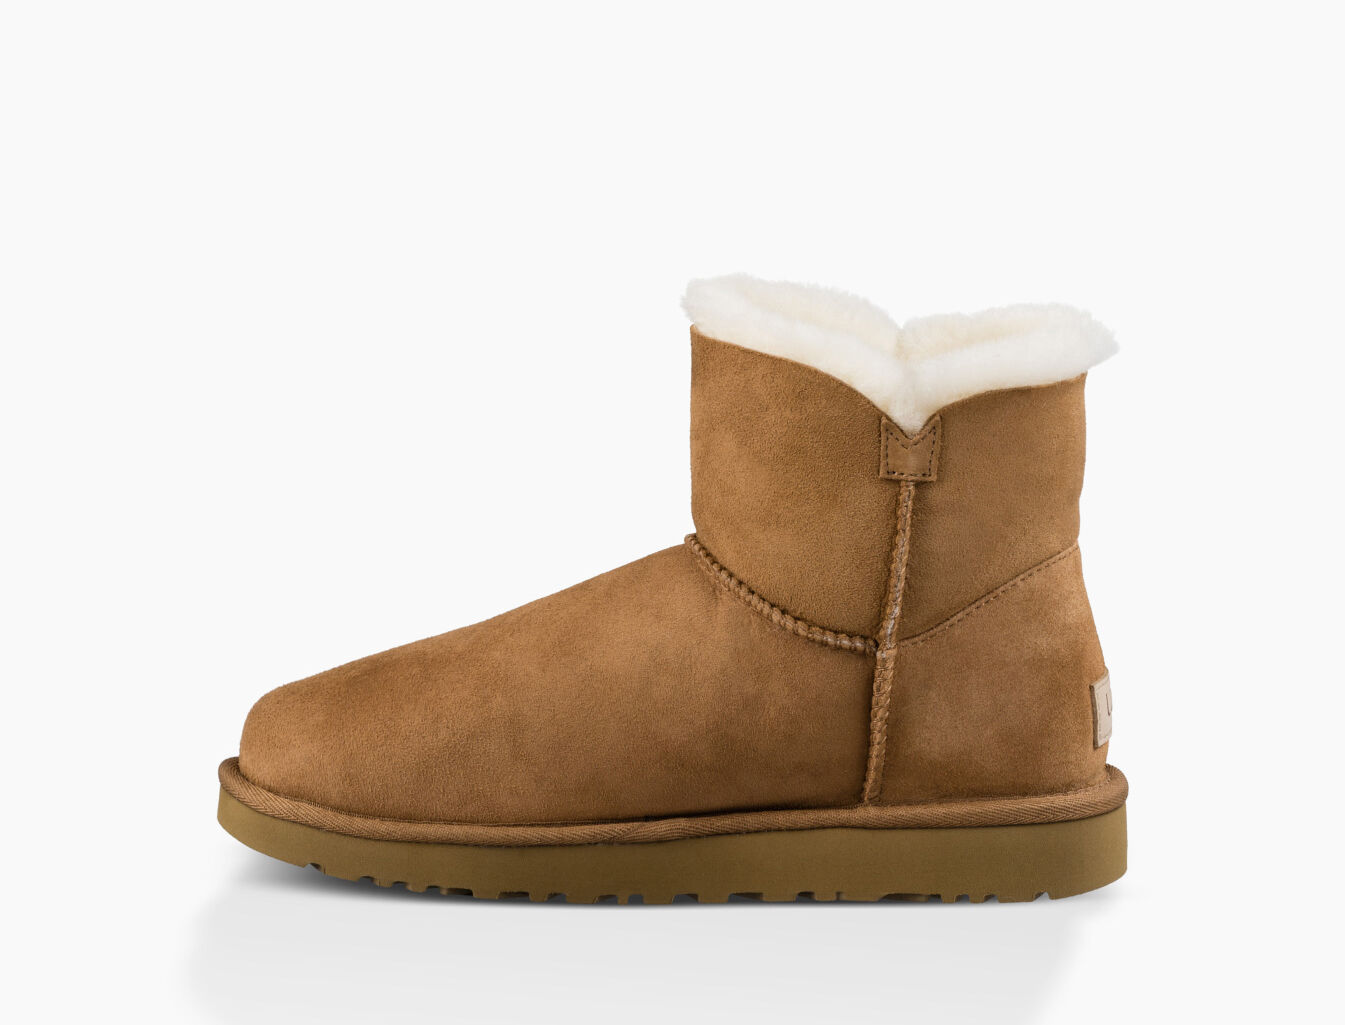 Buy Cheap With Paypal Mini Bailey Button II Chestnut Boots - Chestnut UGG Outlet Low Shipping Fee Clearance Best Sale Comfortable For Sale 100% Guaranteed For Sale l2QlKKoVMw